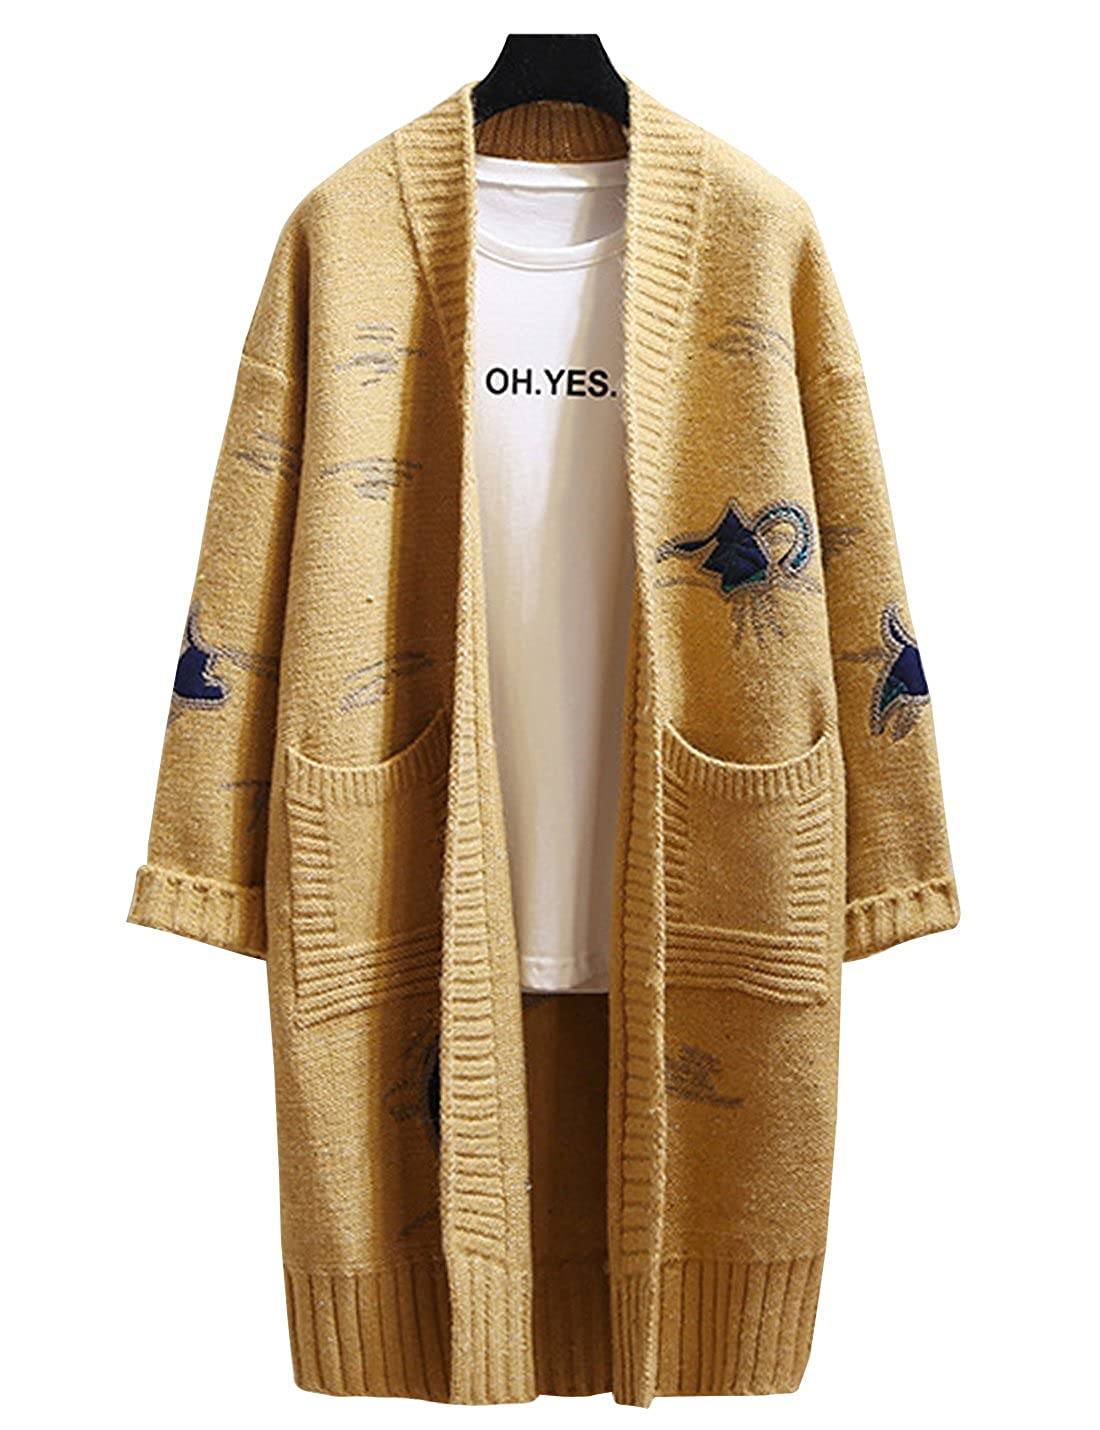 Uaneo Womens Thick Warm Casual Loose Embroidered Long Sleeves Open Front Knit Cardigan Sweater